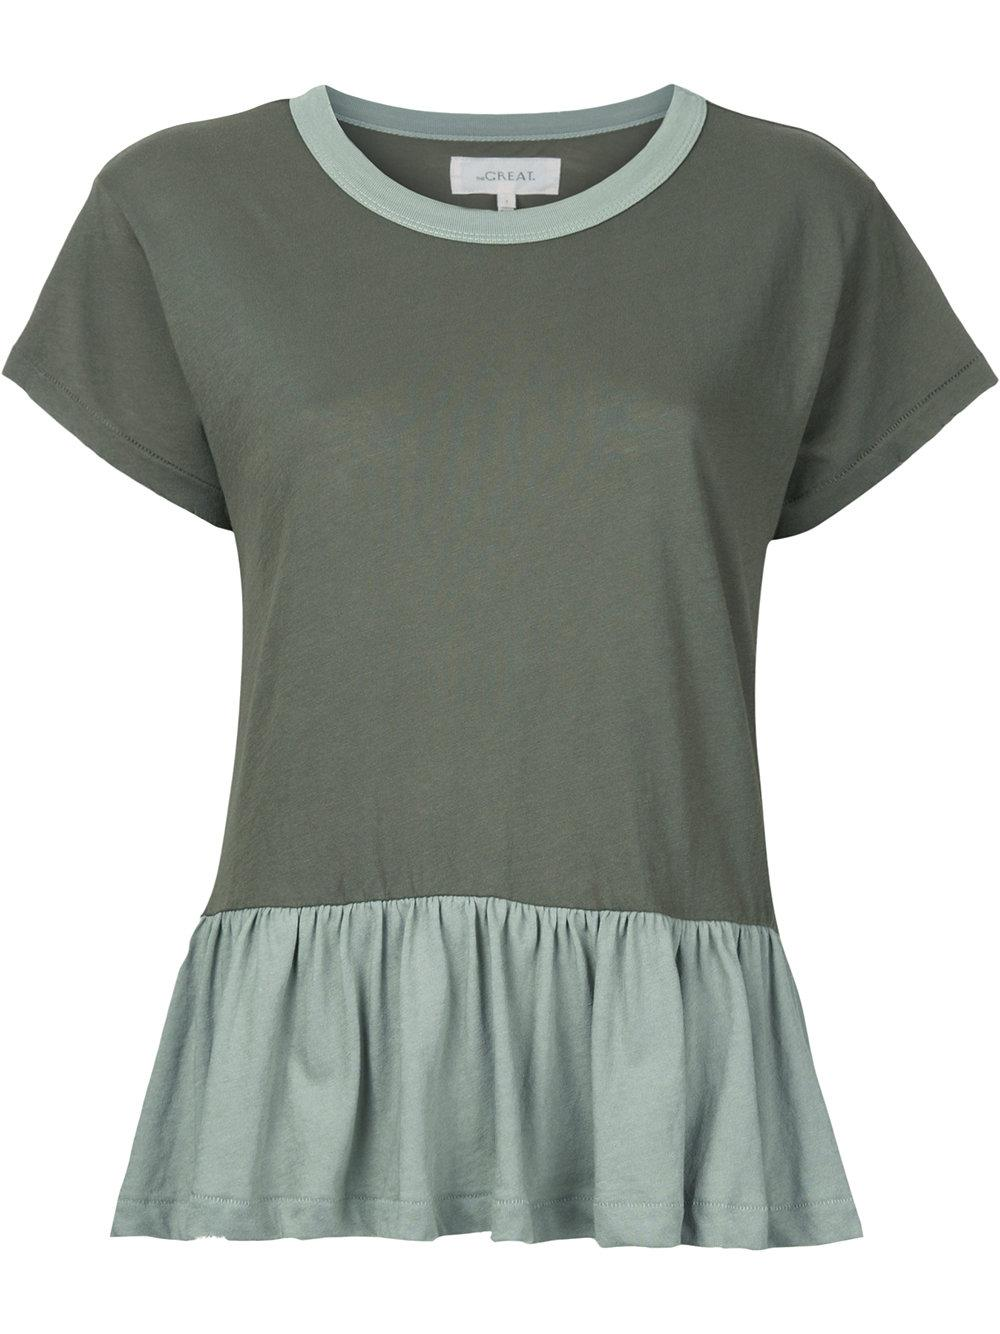 Lyst the great maglia t shirt 39 the ruffle 39 in green The great t shirt